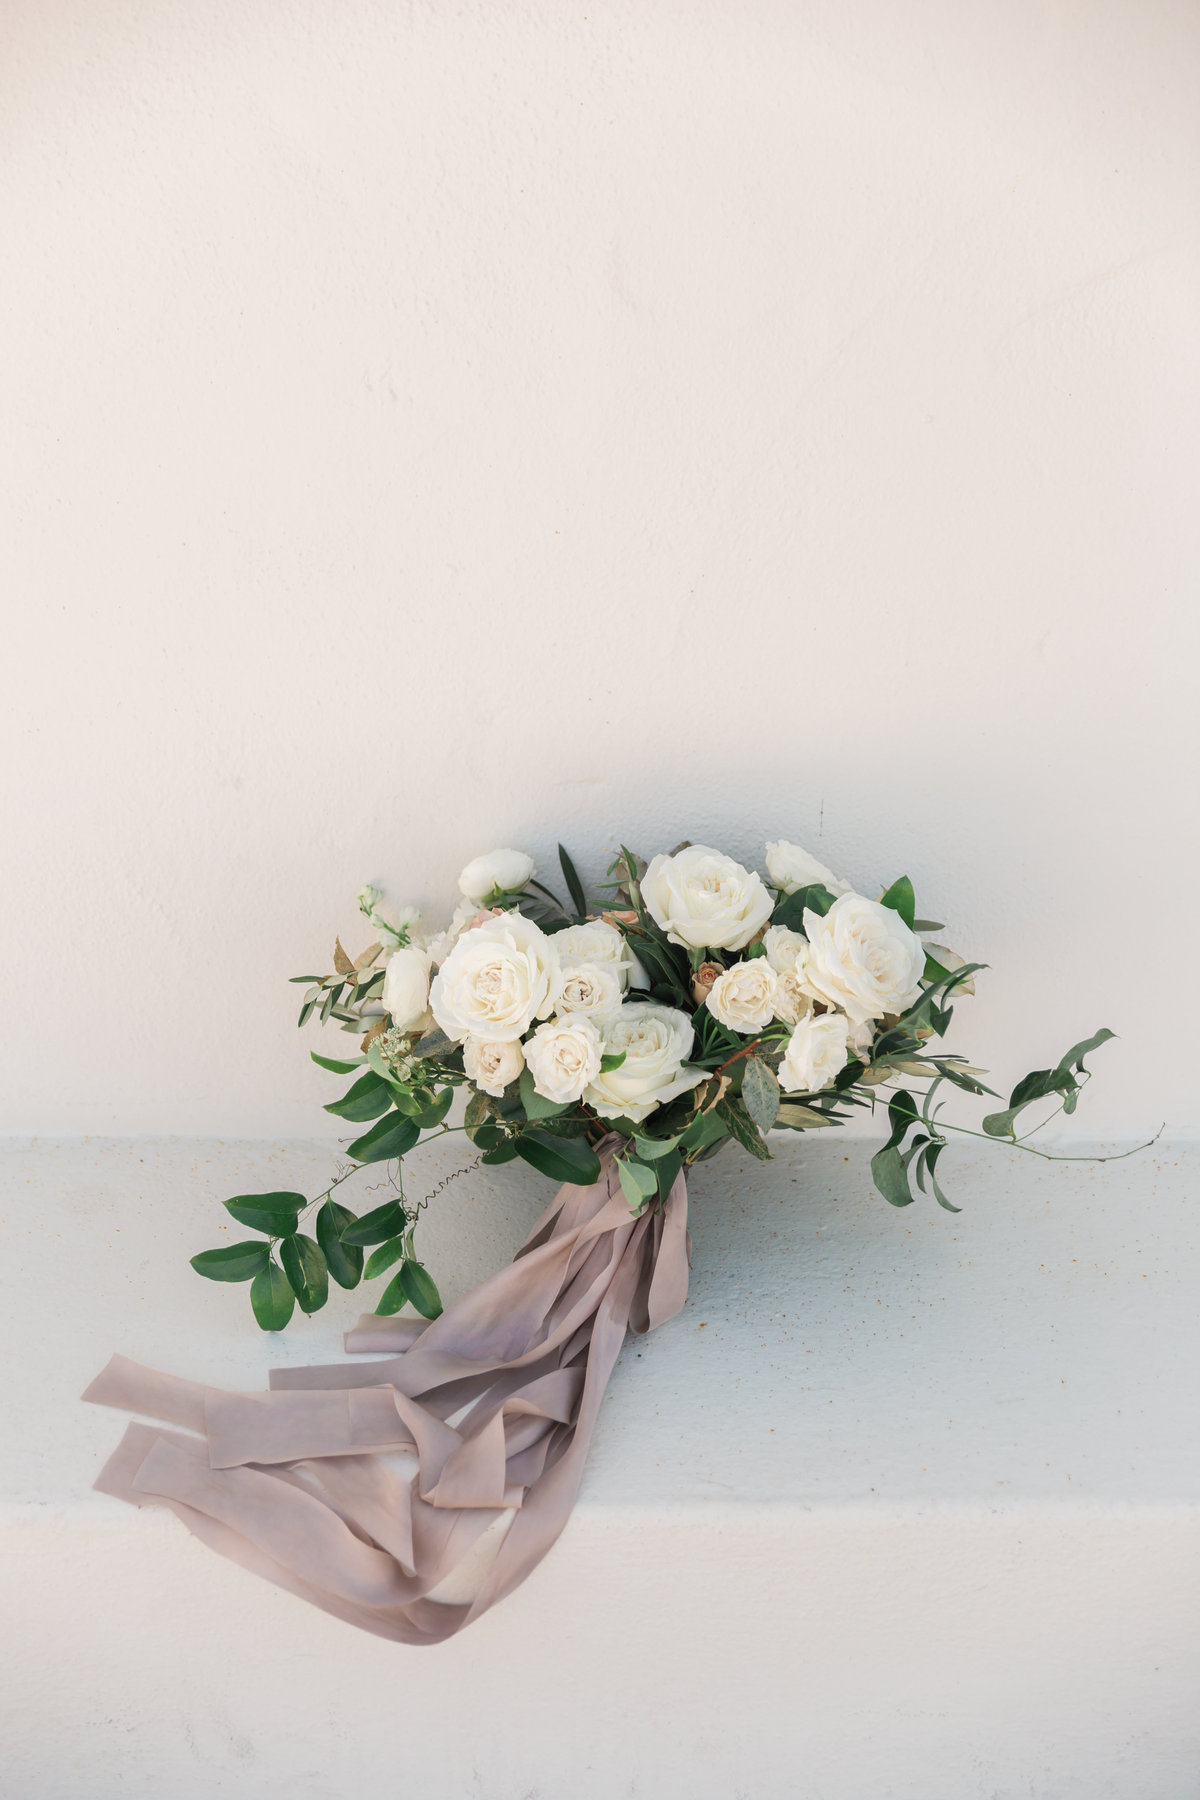 Carmel_Seaside_Chic_Wedding_Valorie_Darling_Photography - 13 of 134